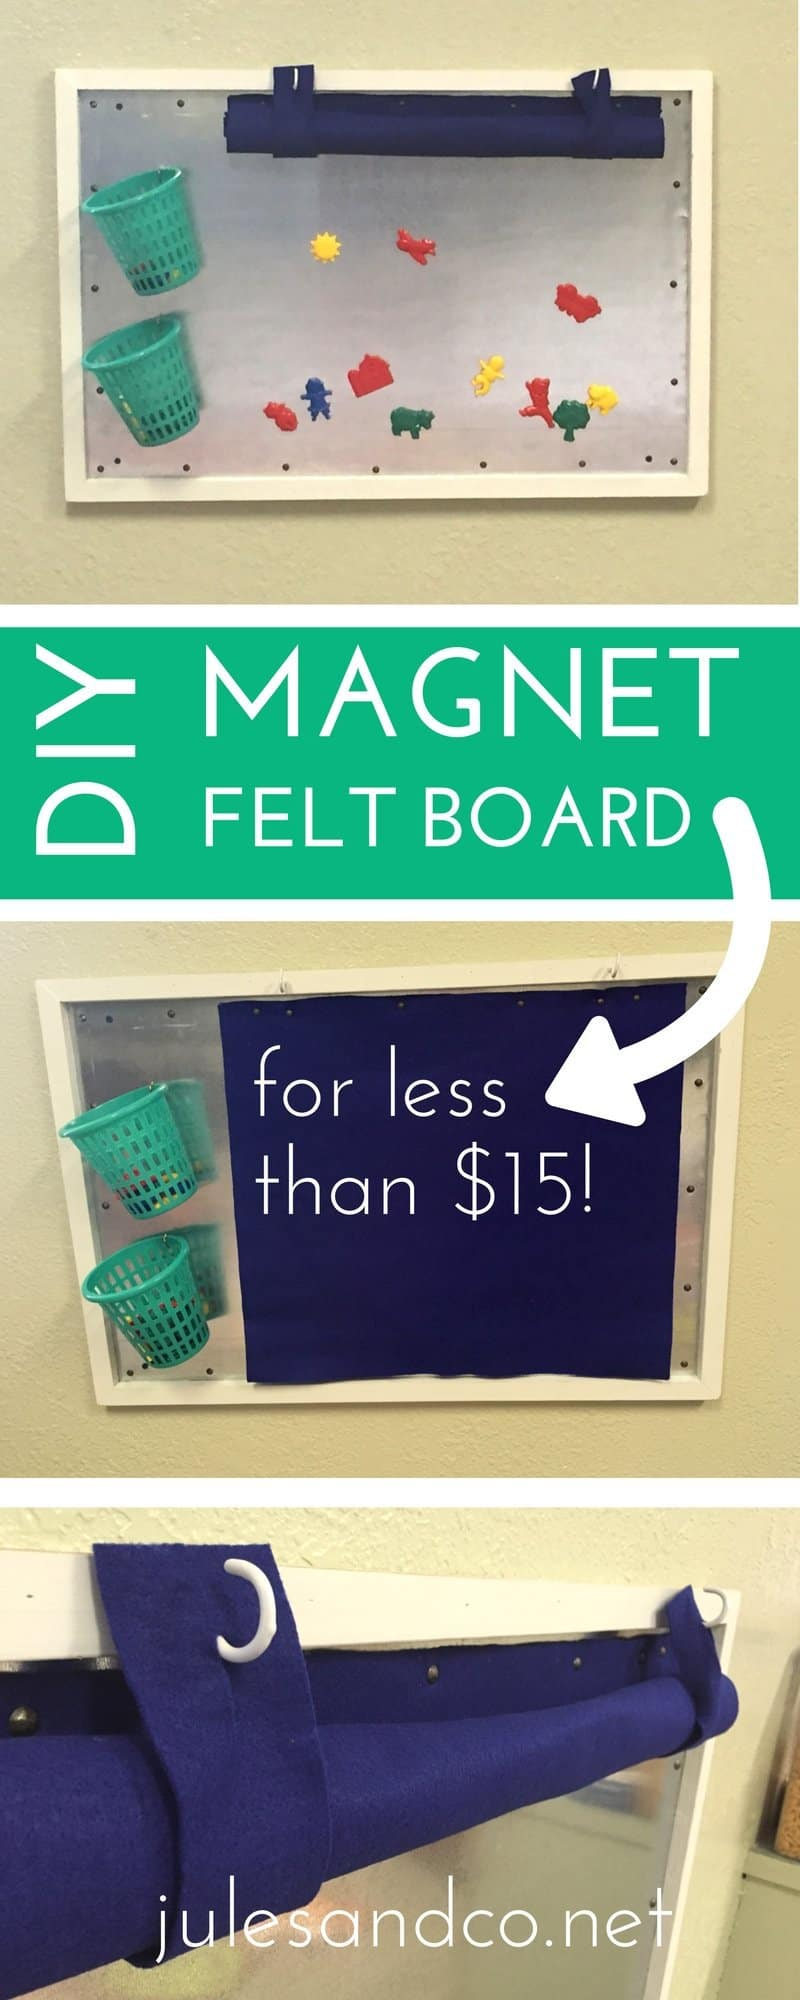 Make a DIY magnet felt board on the cheap! Yes, you can use dry erase markers on this too! Perfect for toddler and kid play spaces. Click through to get the tutorial!